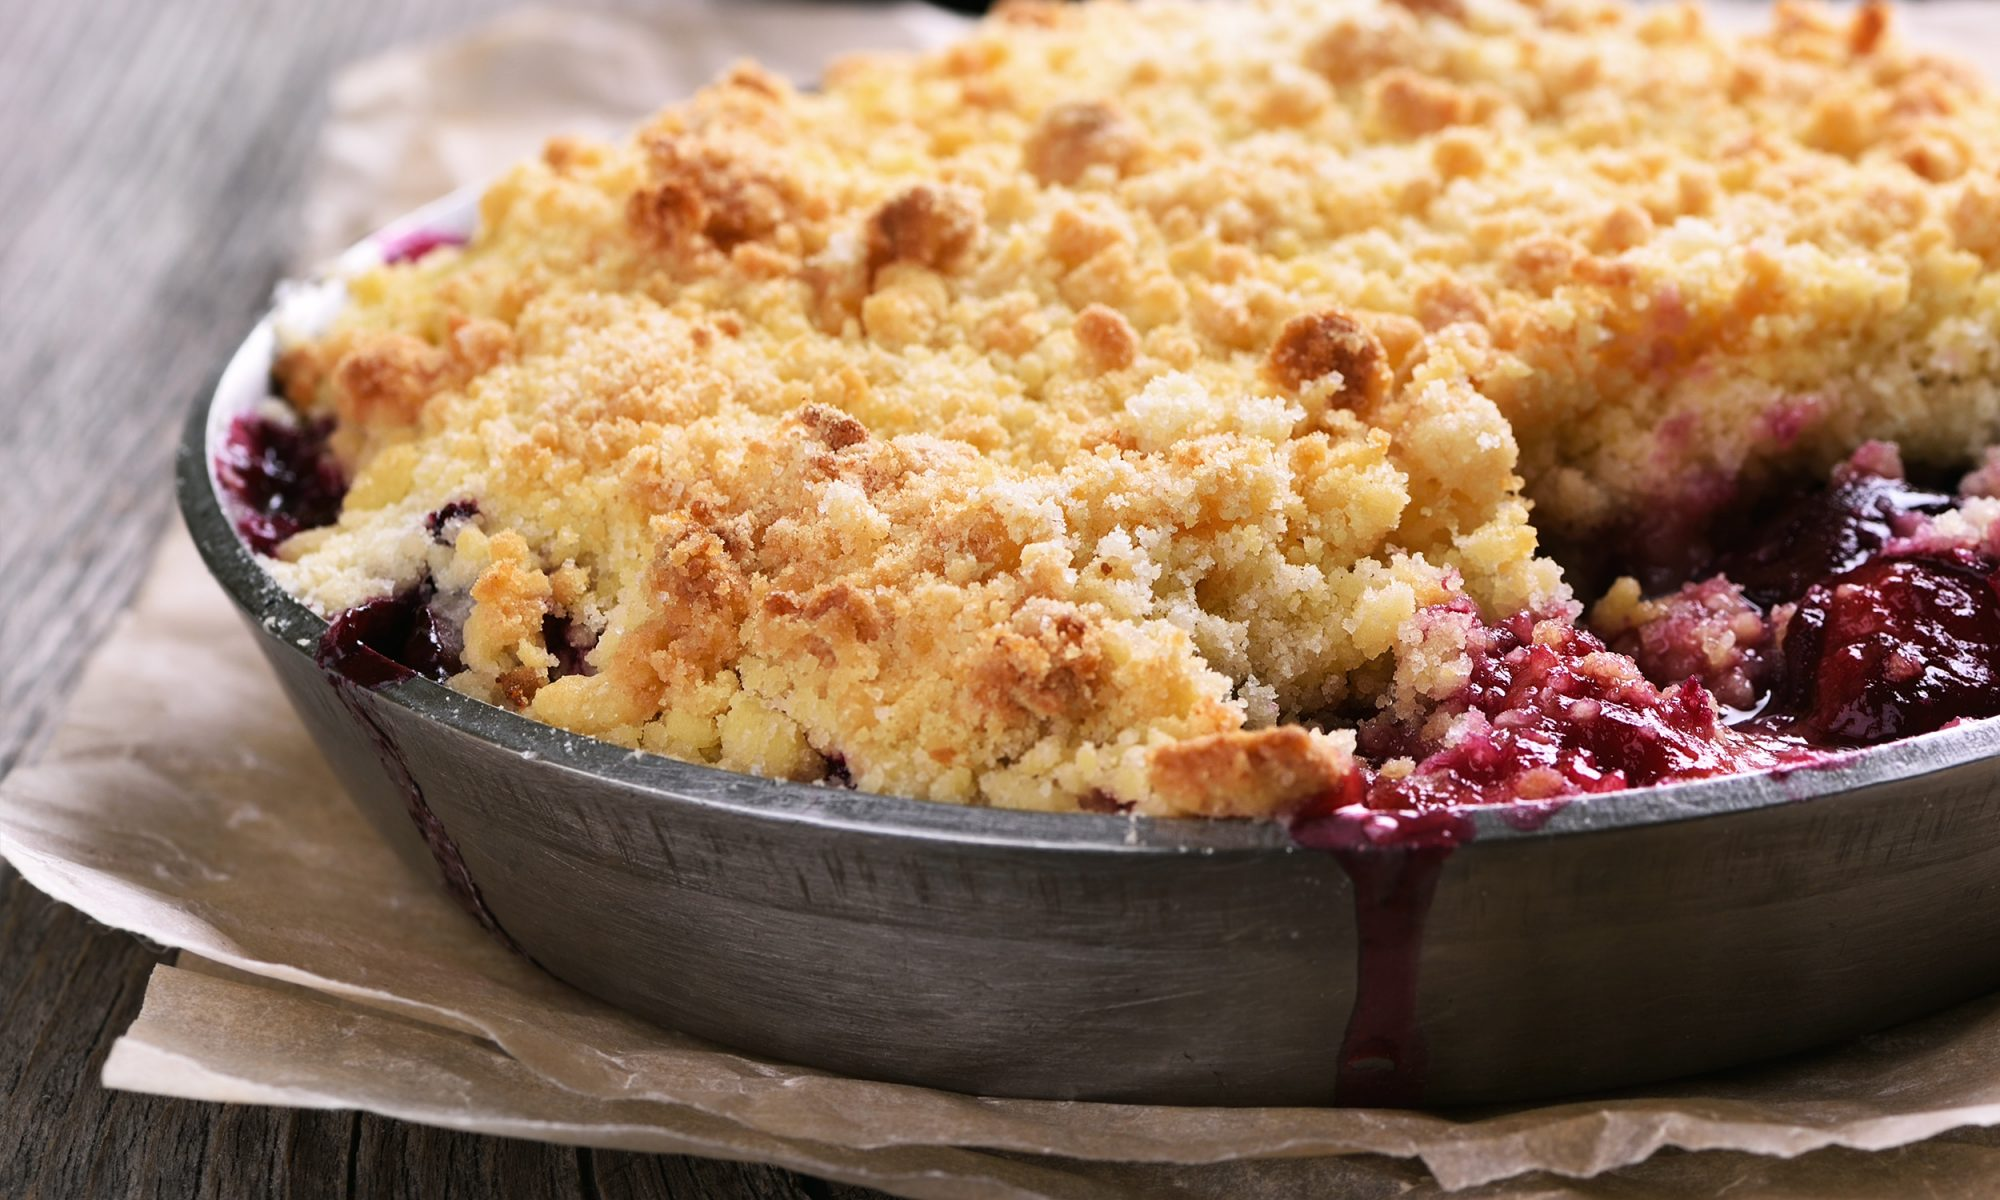 EC: Put Crumb Topping on Everything